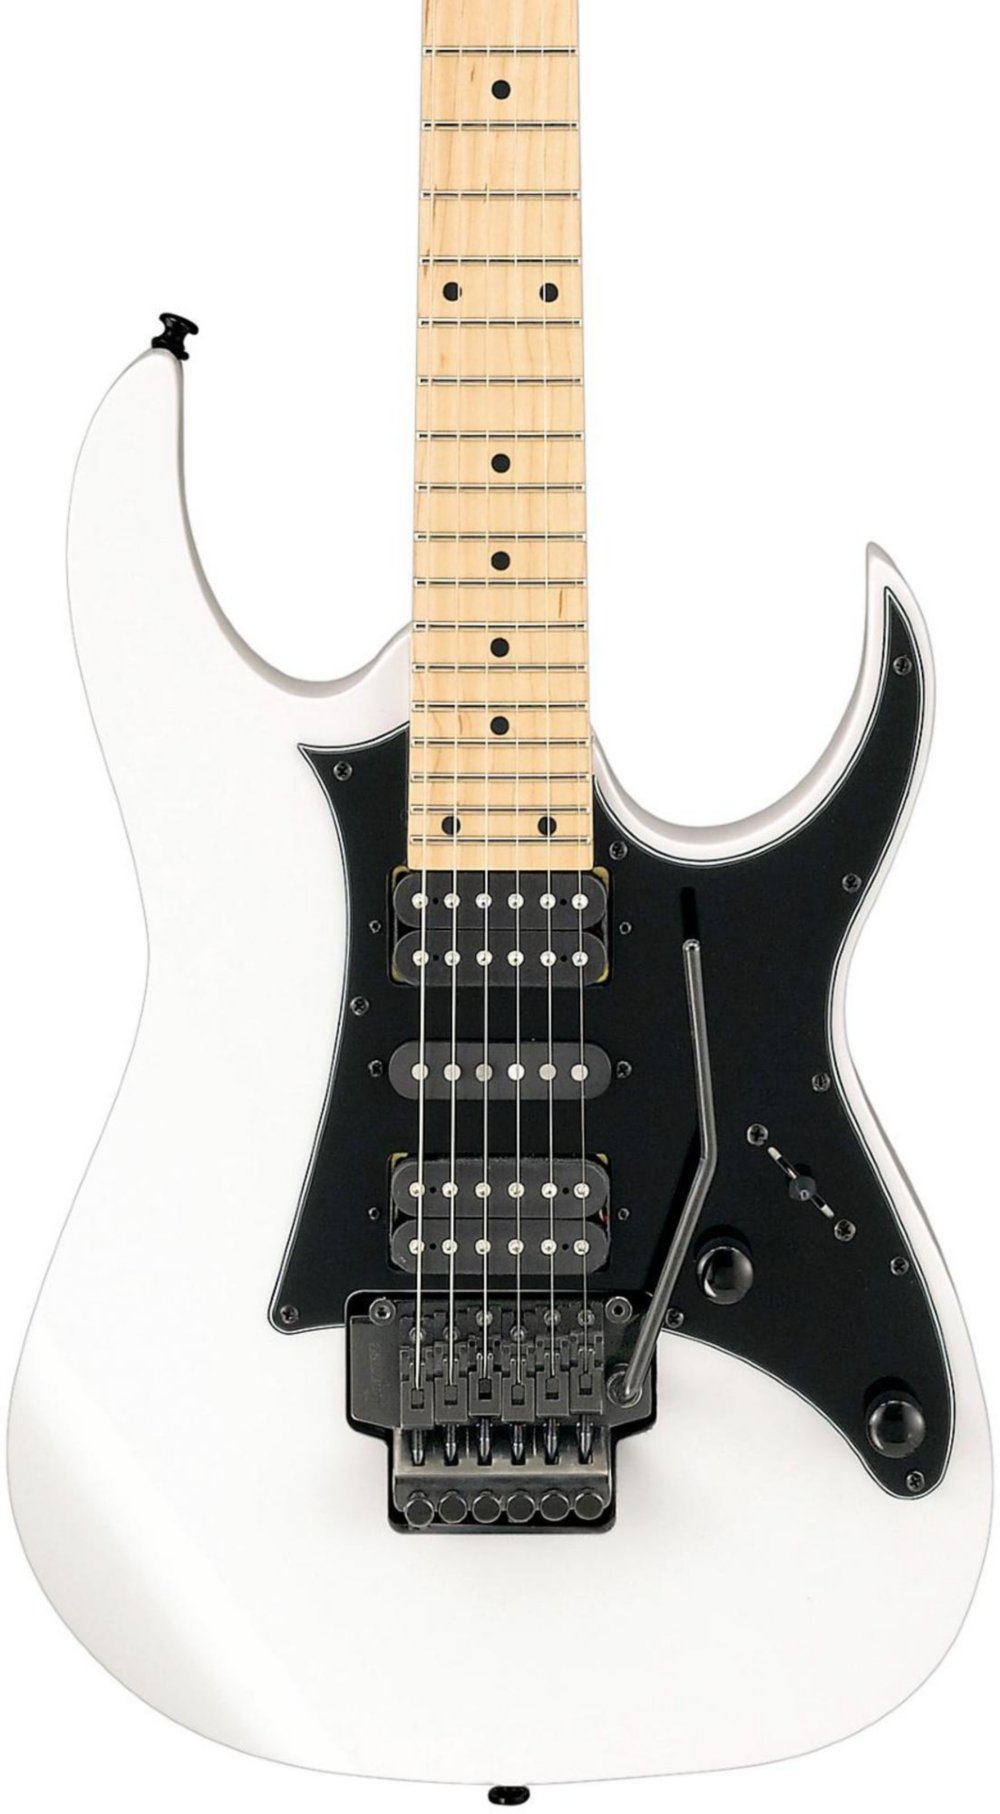 Cheap Ibanez RG450 Meters - White Black Friday & Cyber Monday 2019